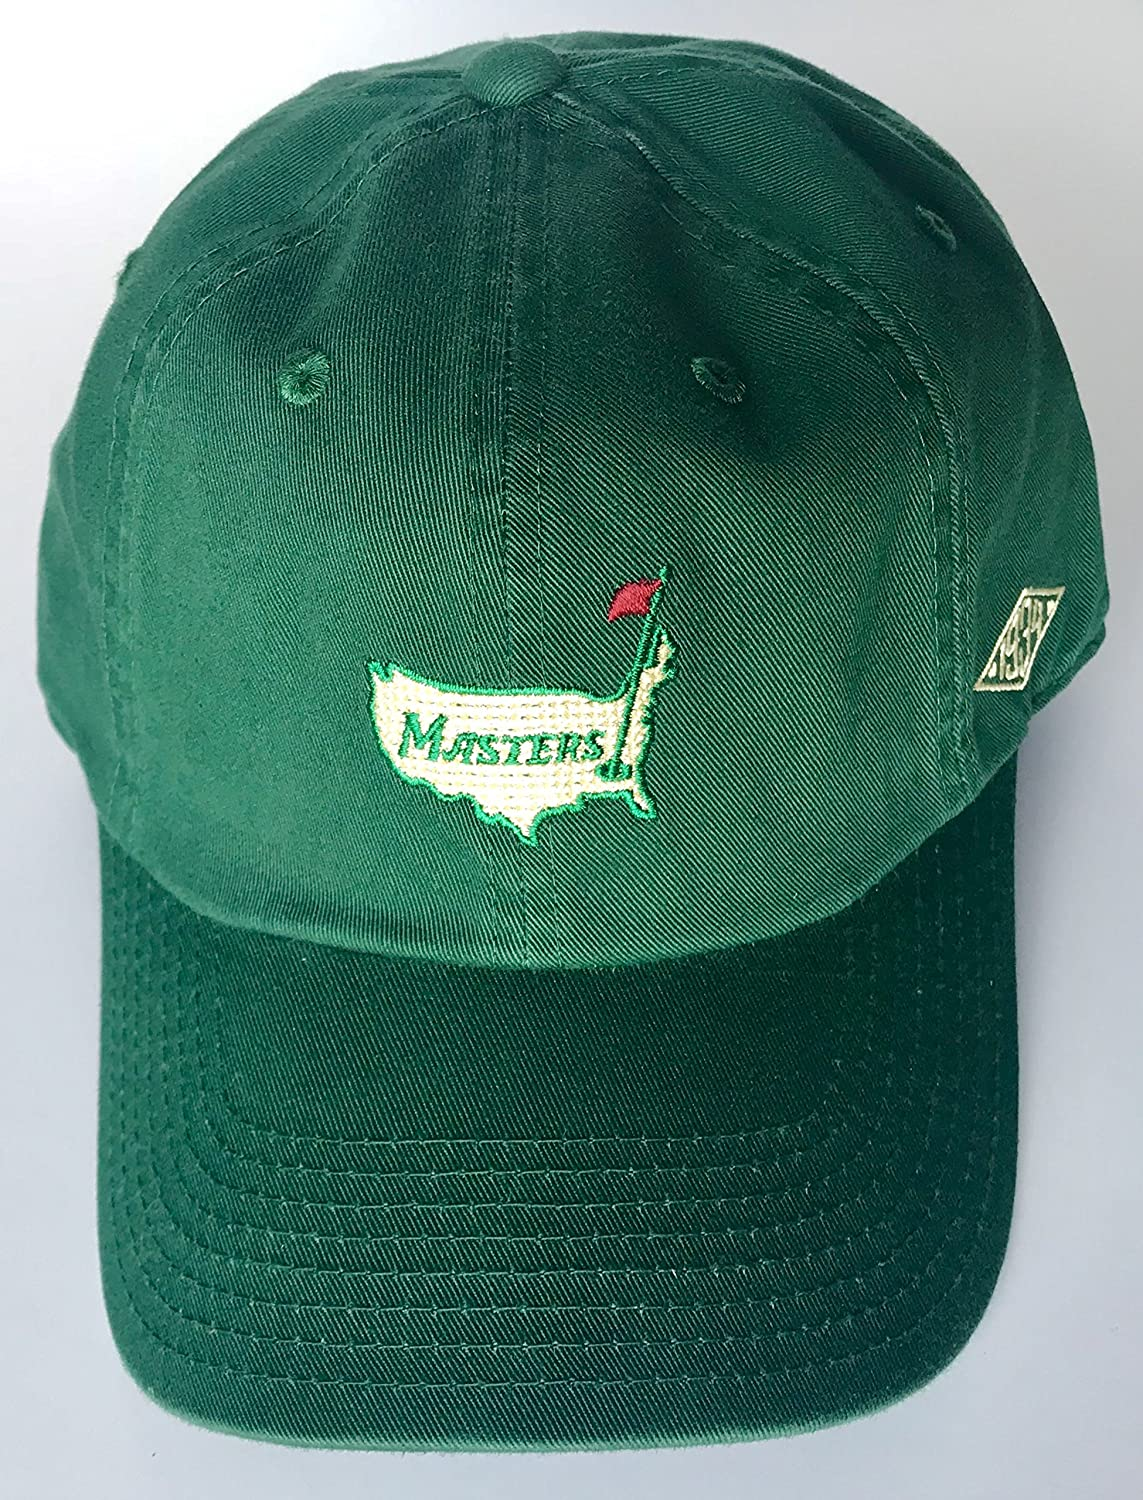 ab11dc753 Masters golf Hat Augusta National vintage logo green new 2019 pga at ...